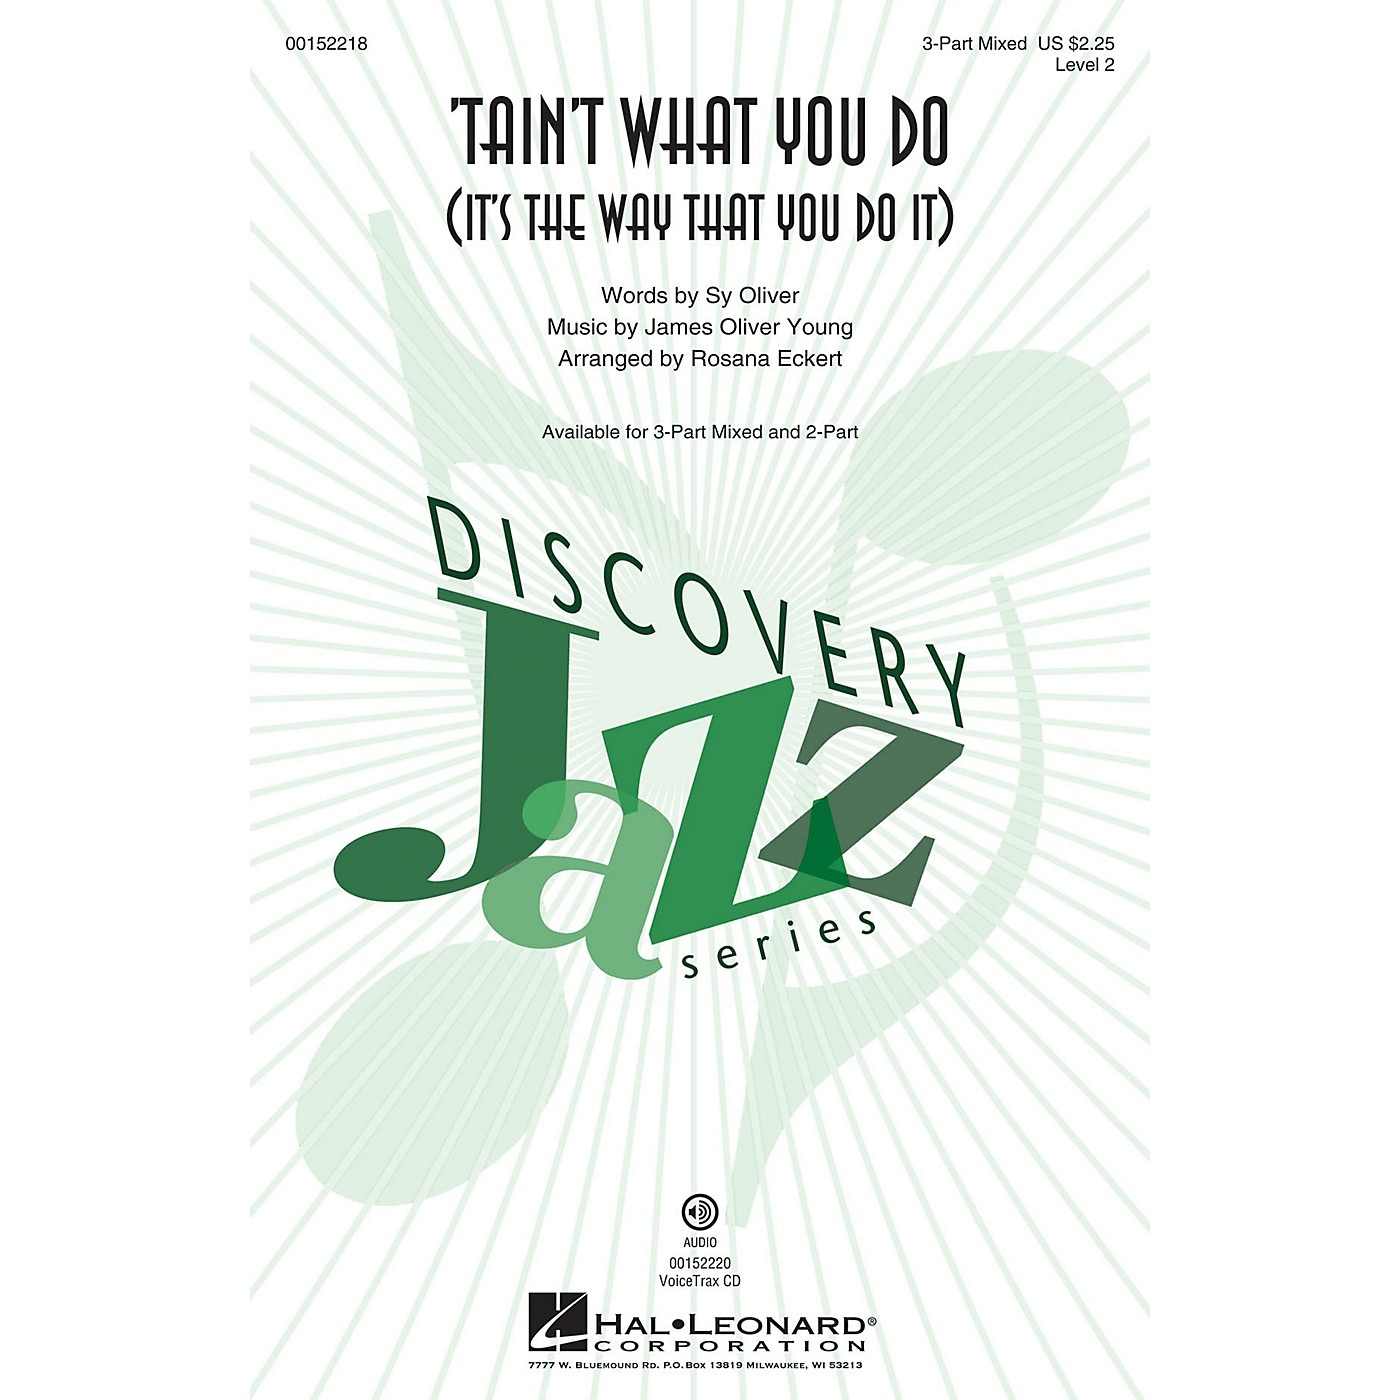 Hal Leonard Tain't What You Do (It's the Way That You Do It) 3-Part Mixed arranged by Rosana Eckert thumbnail